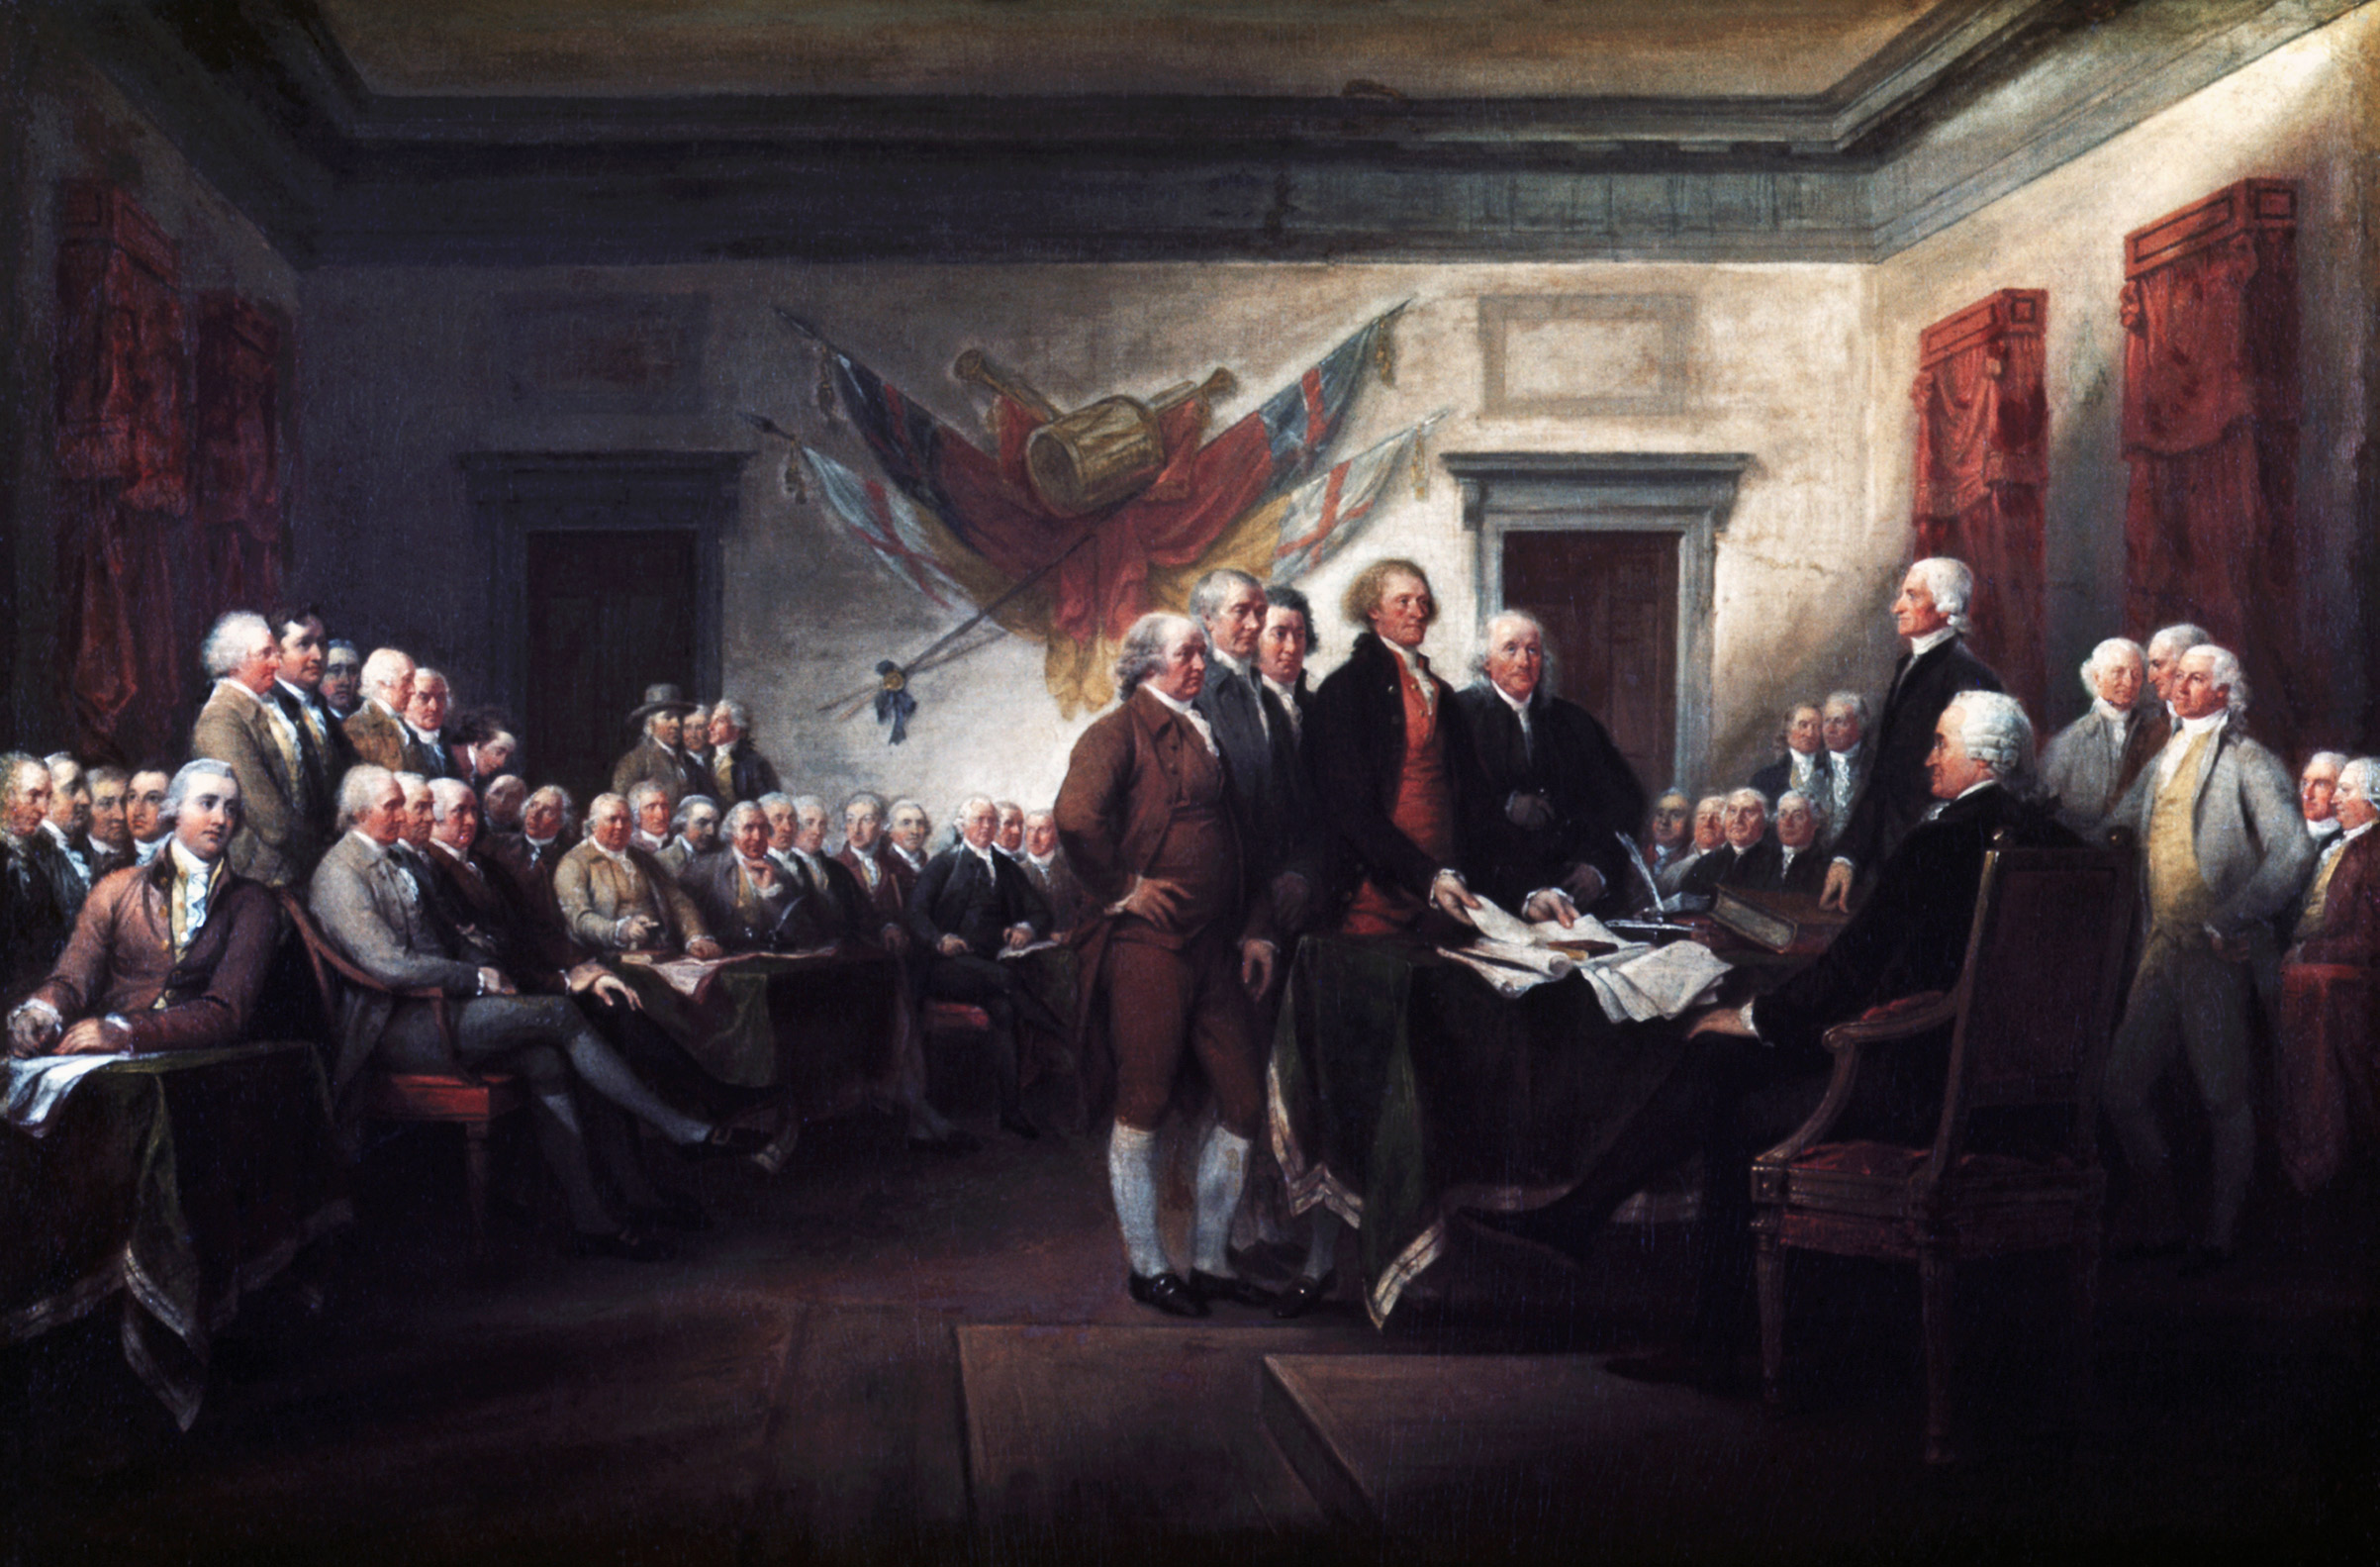 John Trumbull's The Declaration of Independence, July 4, 1776, commissioned in 1817.